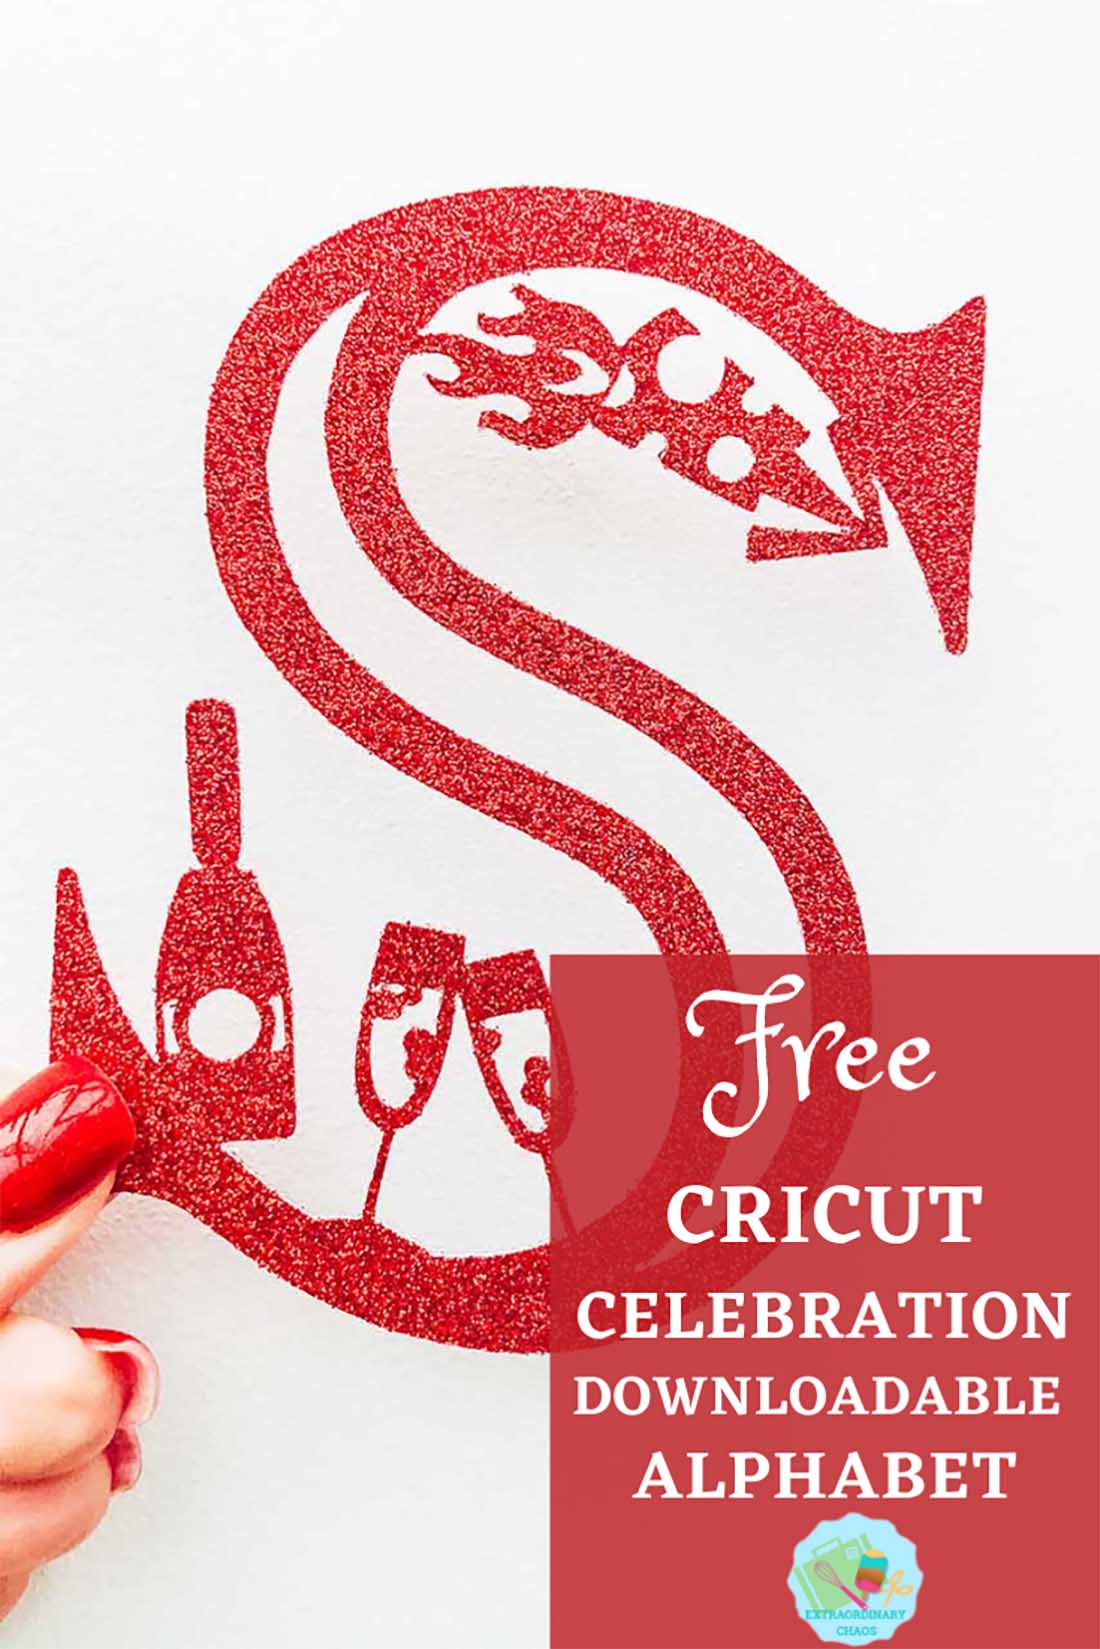 Free Cricut Celebration Alphabet